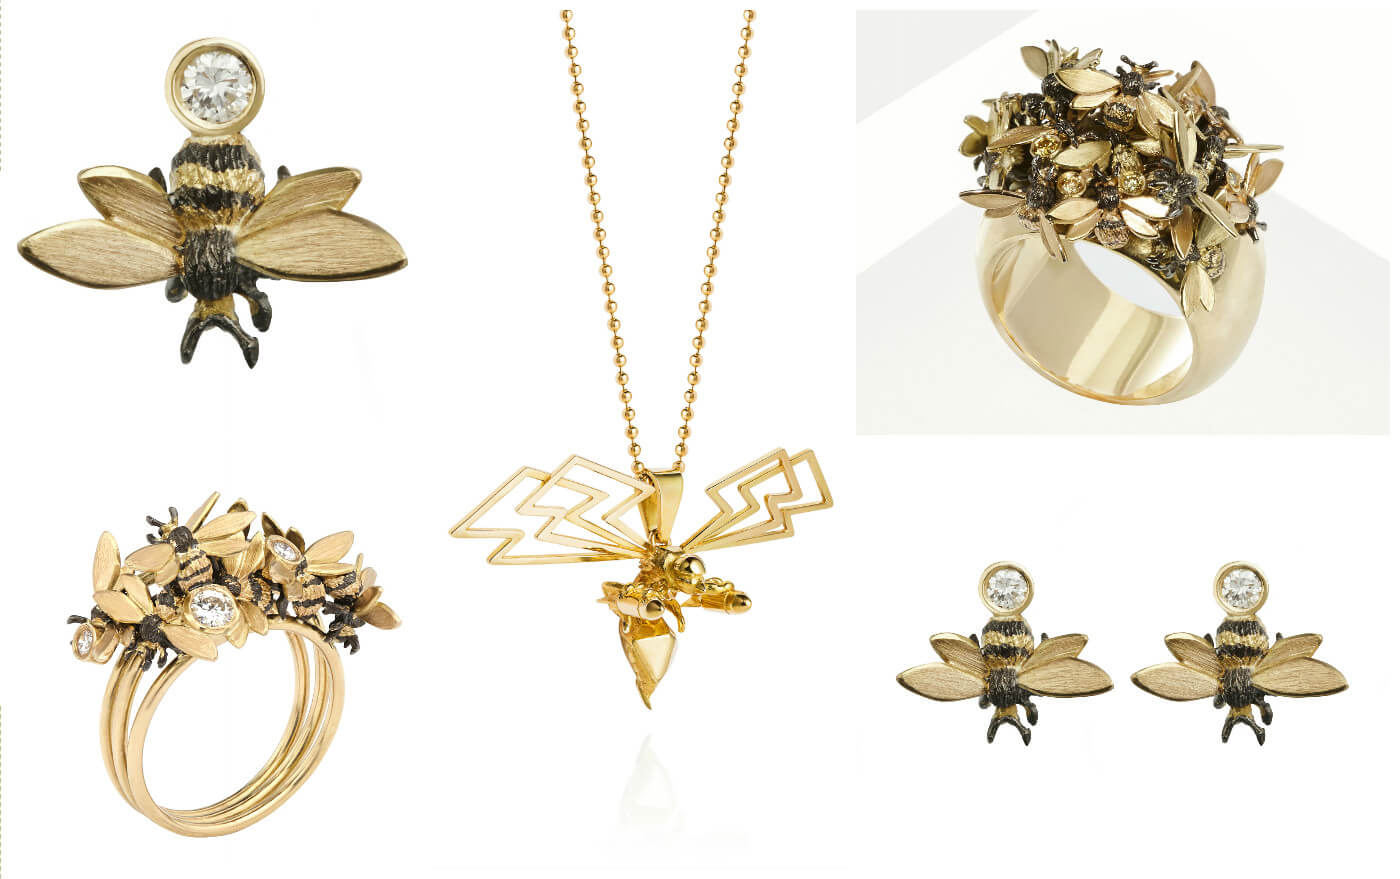 Max Danger Is A Danish Born Jewellery Designer And Craftsman Self Confessed Gold Obsessive Who Has Retion For Innovative Striking Pieces Of